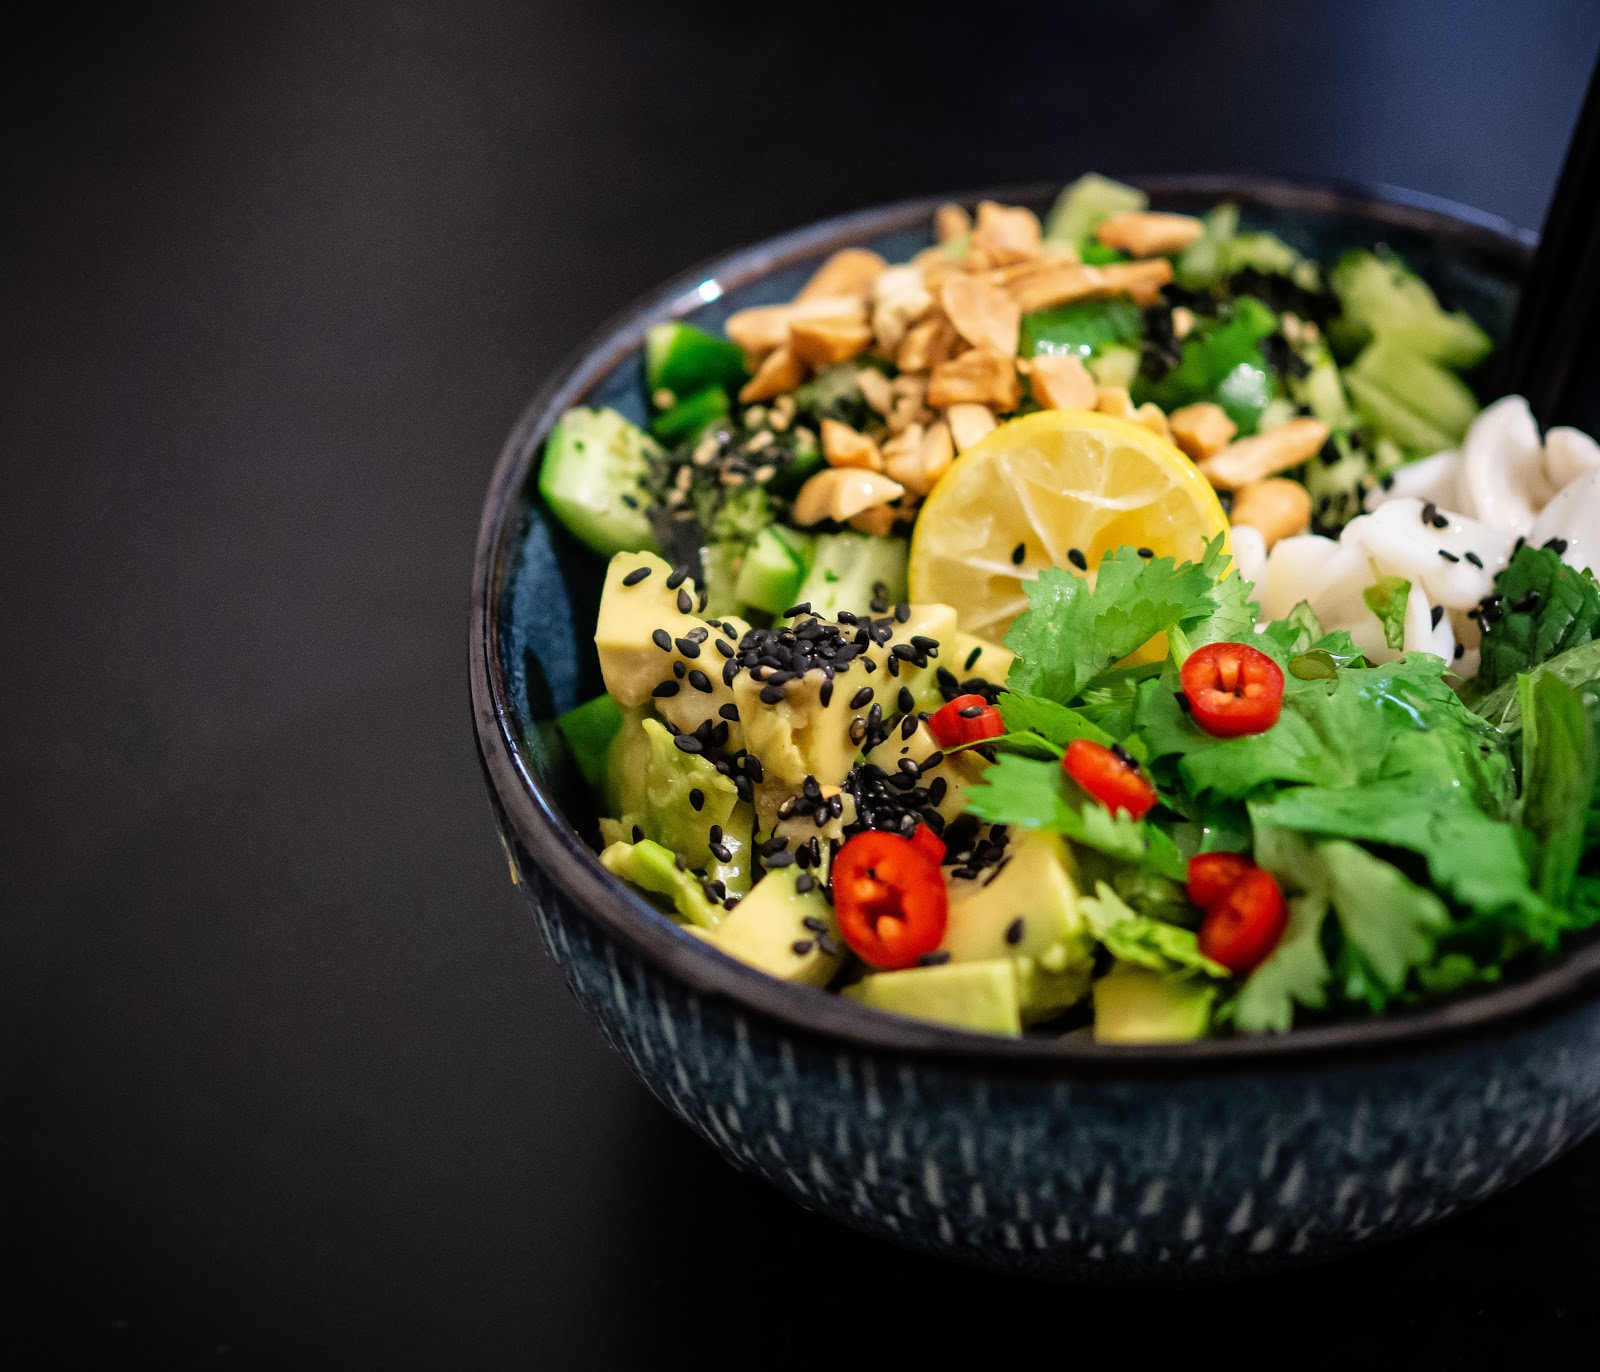 A delicious bowl of avocado, cashews and greens will satisfy your appetite for longer.